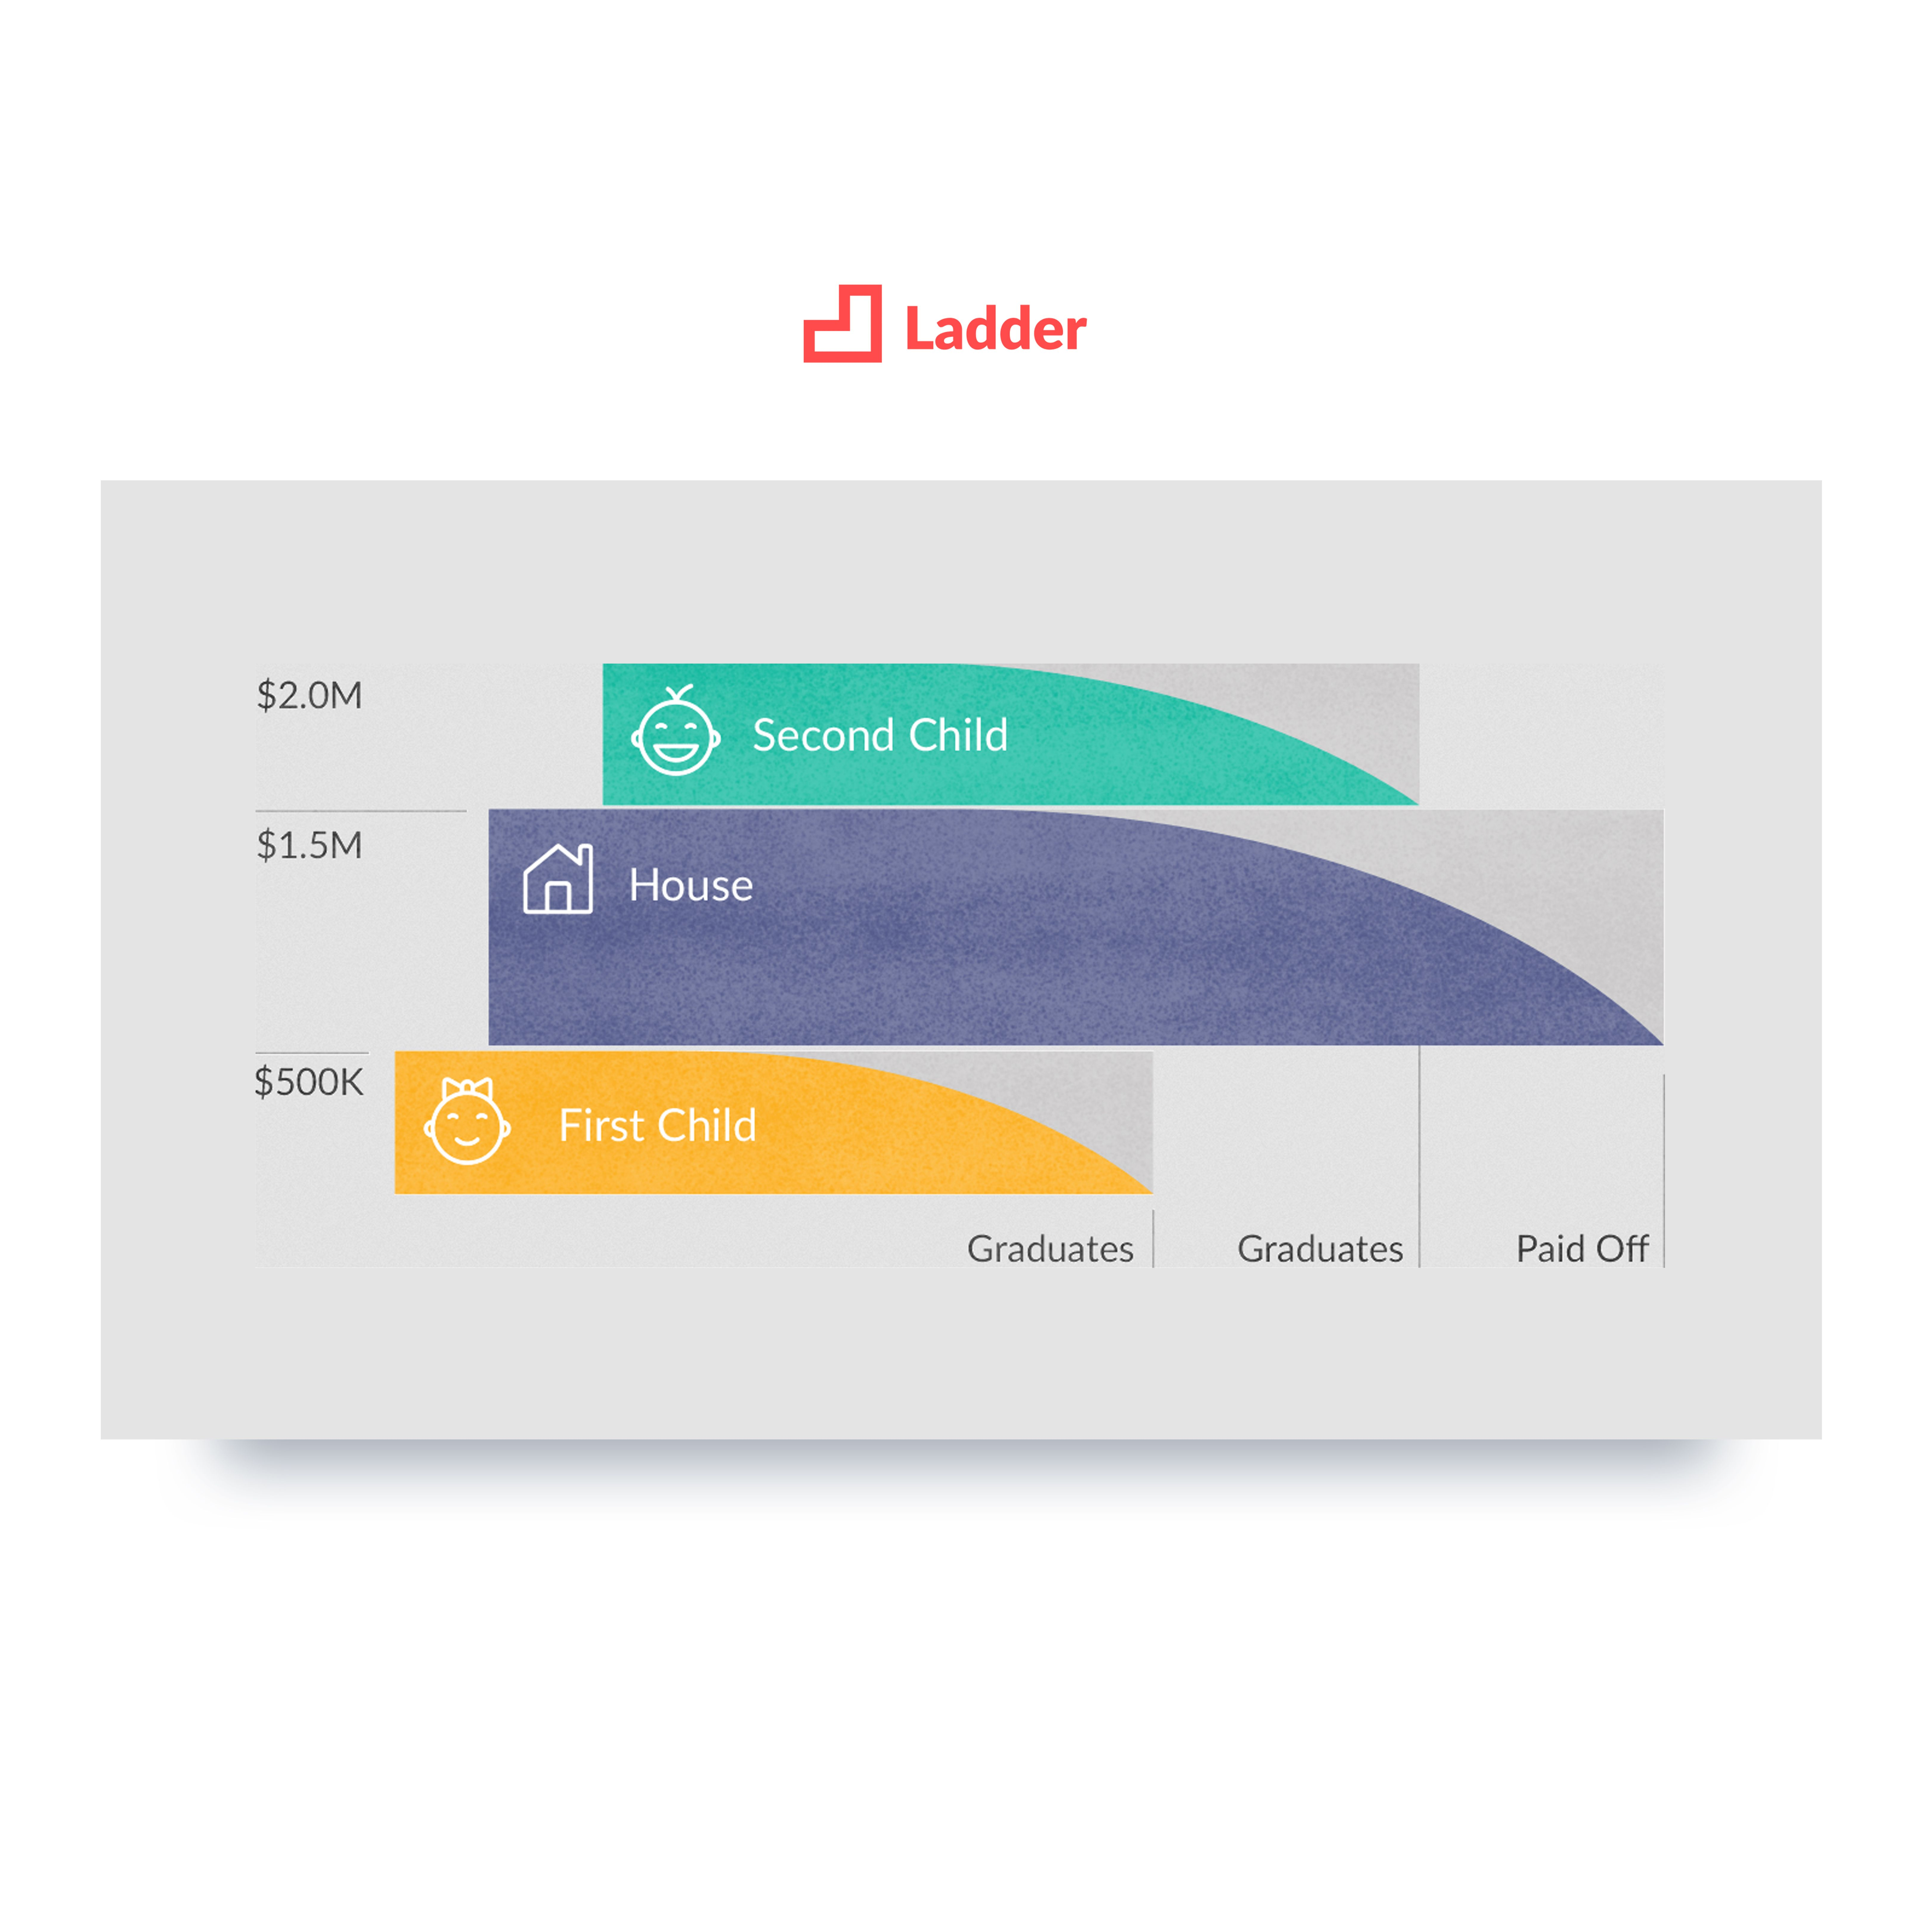 Our life insurance is flexible graphic from ladder life